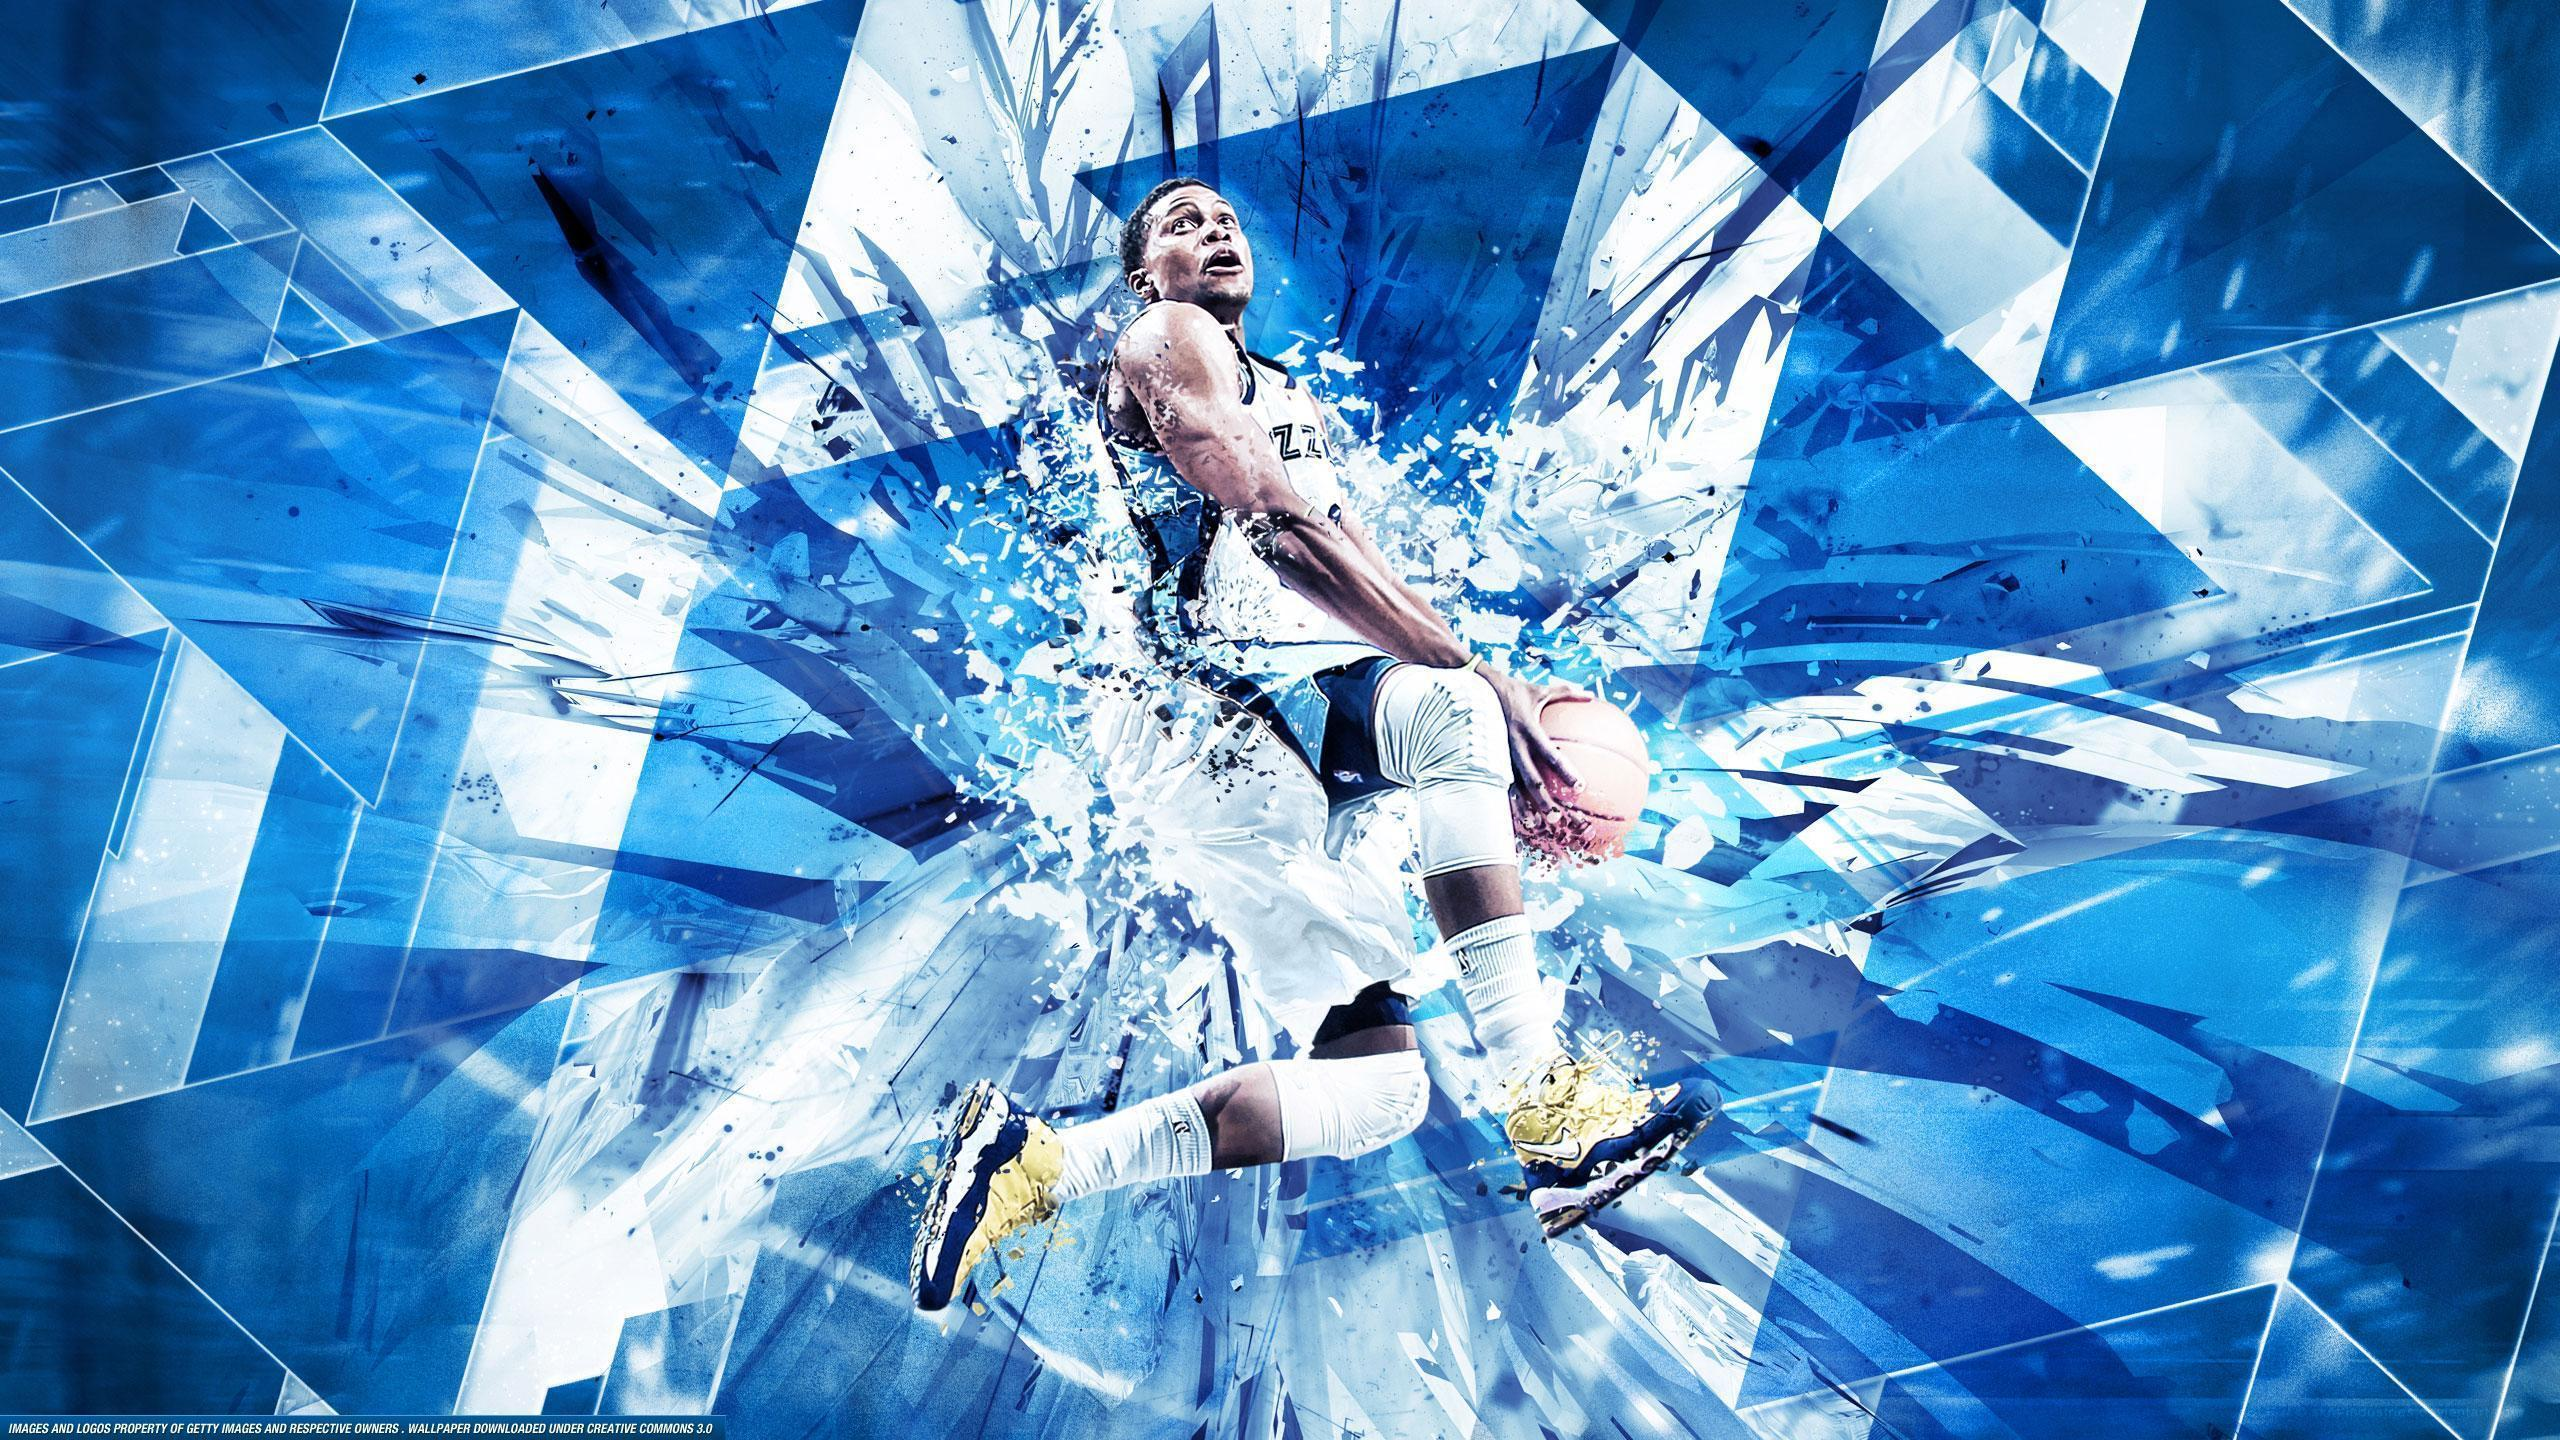 Memphis Grizzlies Wallpapers | Basketball Wallpapers at ...